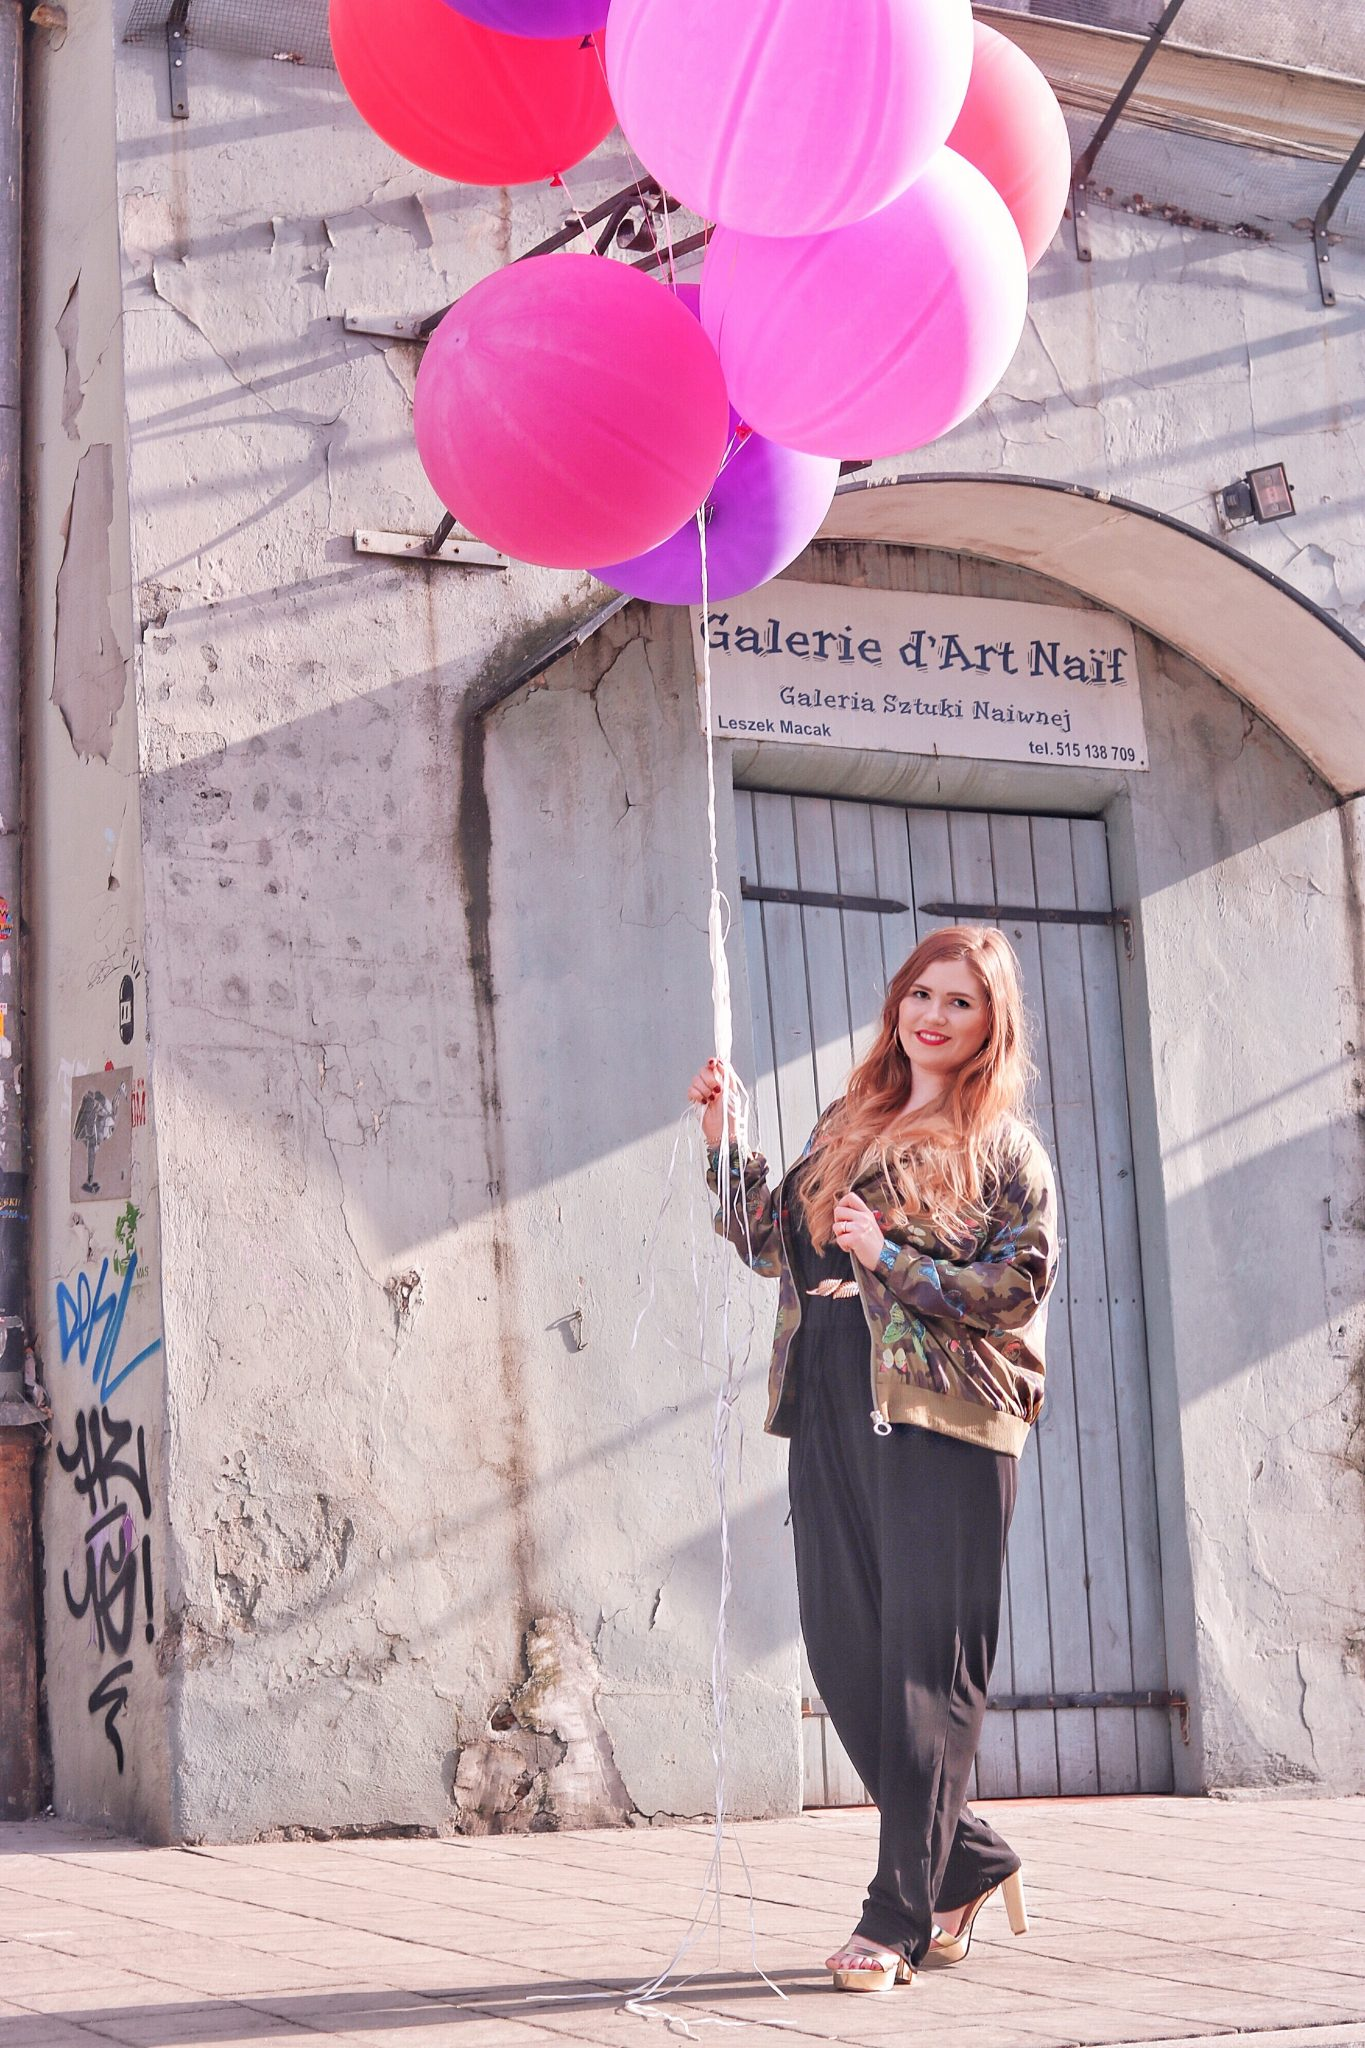 luftballon-fashion-lifestyle-blogger-hamburg